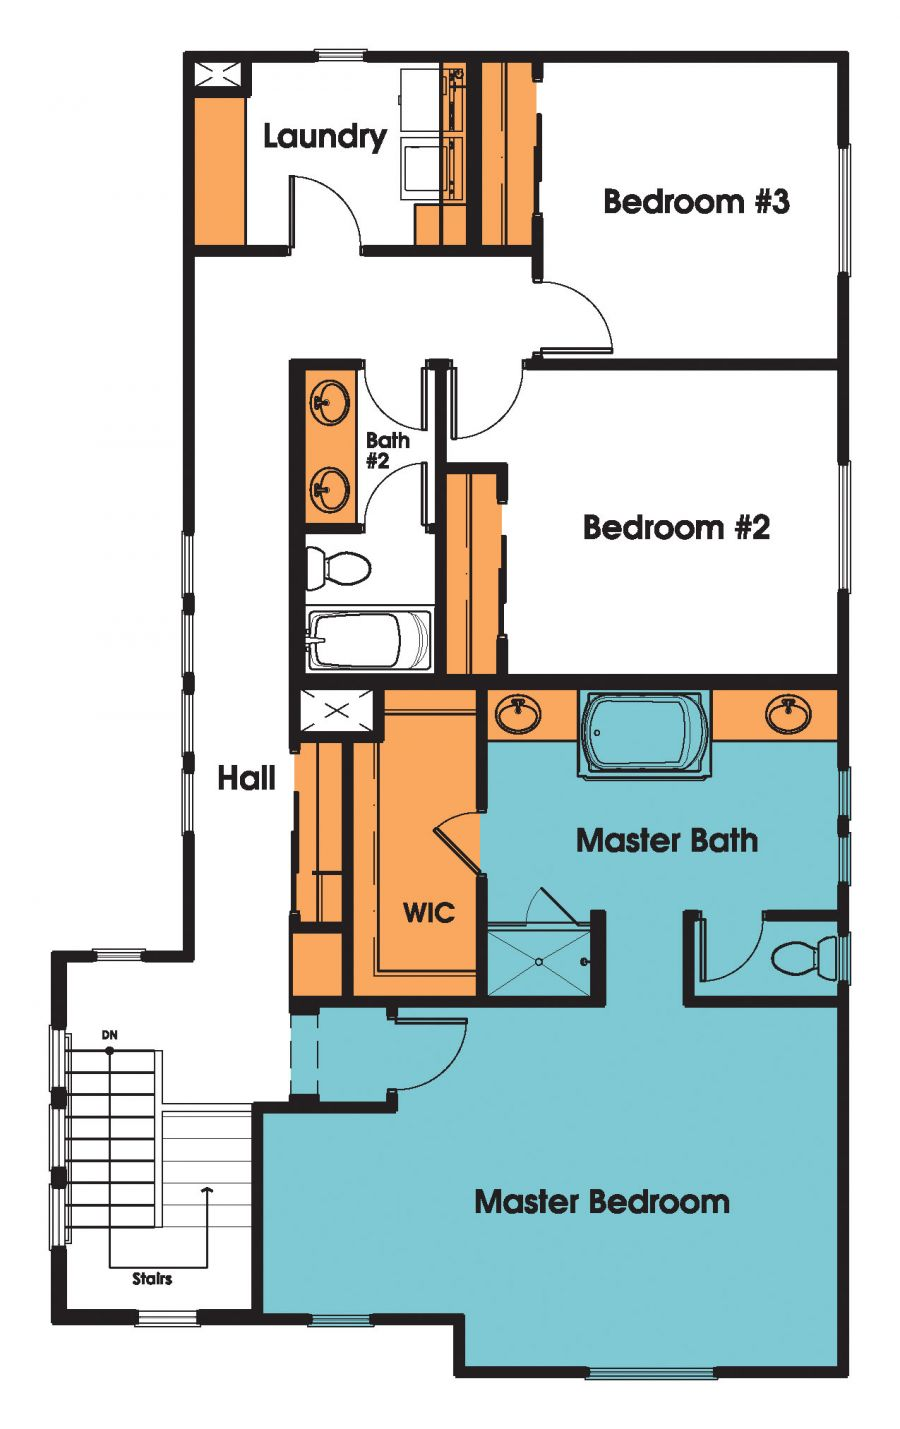 The Starla House Plan is a Two-Story Home with Four Bedrooms